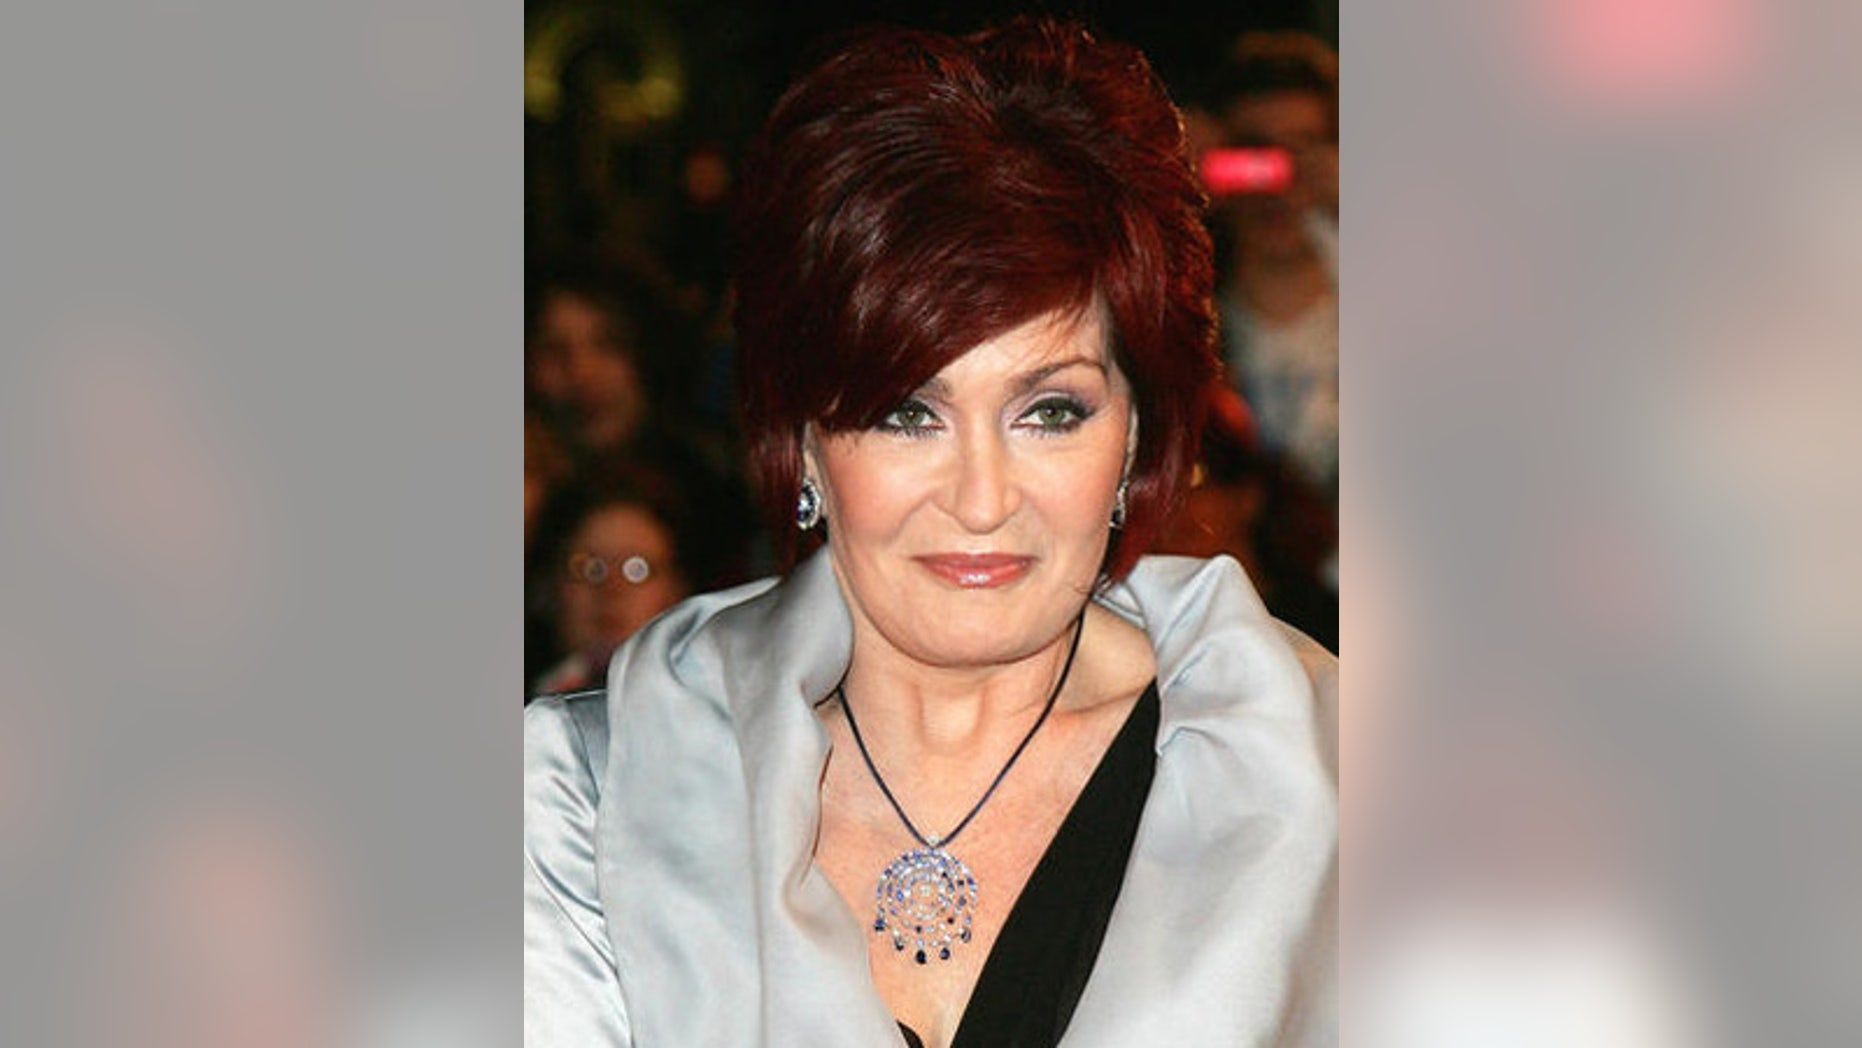 Sharon Osbourne leaves UK 'X Factor' after calling contestants 'little sh-ts' during interview